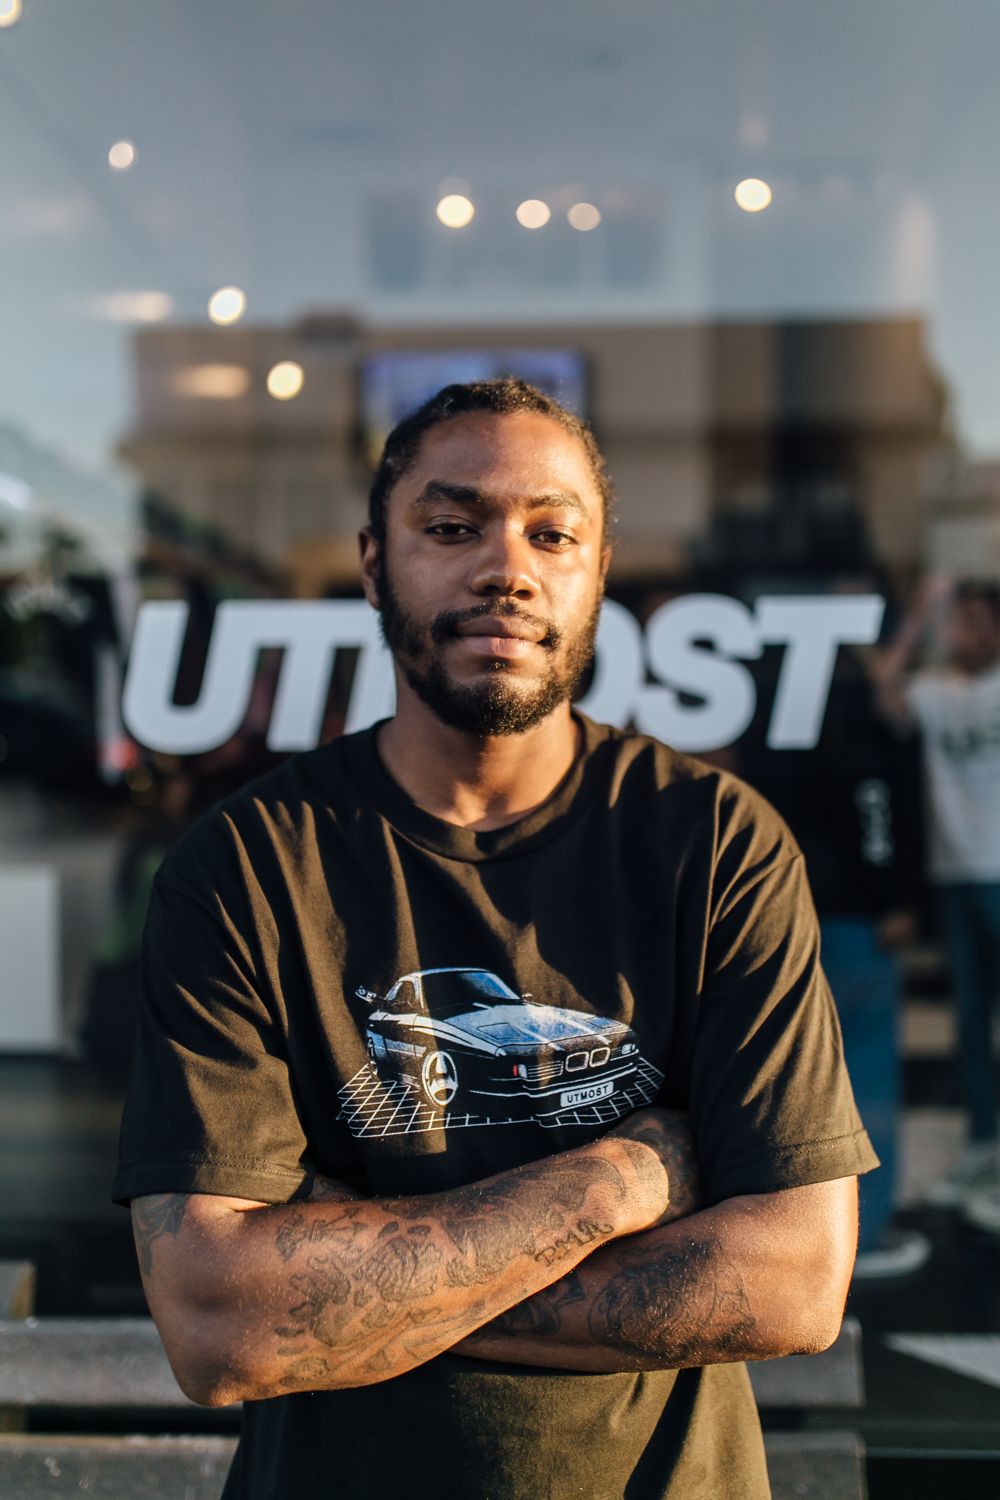 Utmost Co. Co-Founder Jermaine Edwards at the Pop-Up on Melrose Ave (April 1).  / Photo: © Kayla Reefer for SUSPEND Magazine.